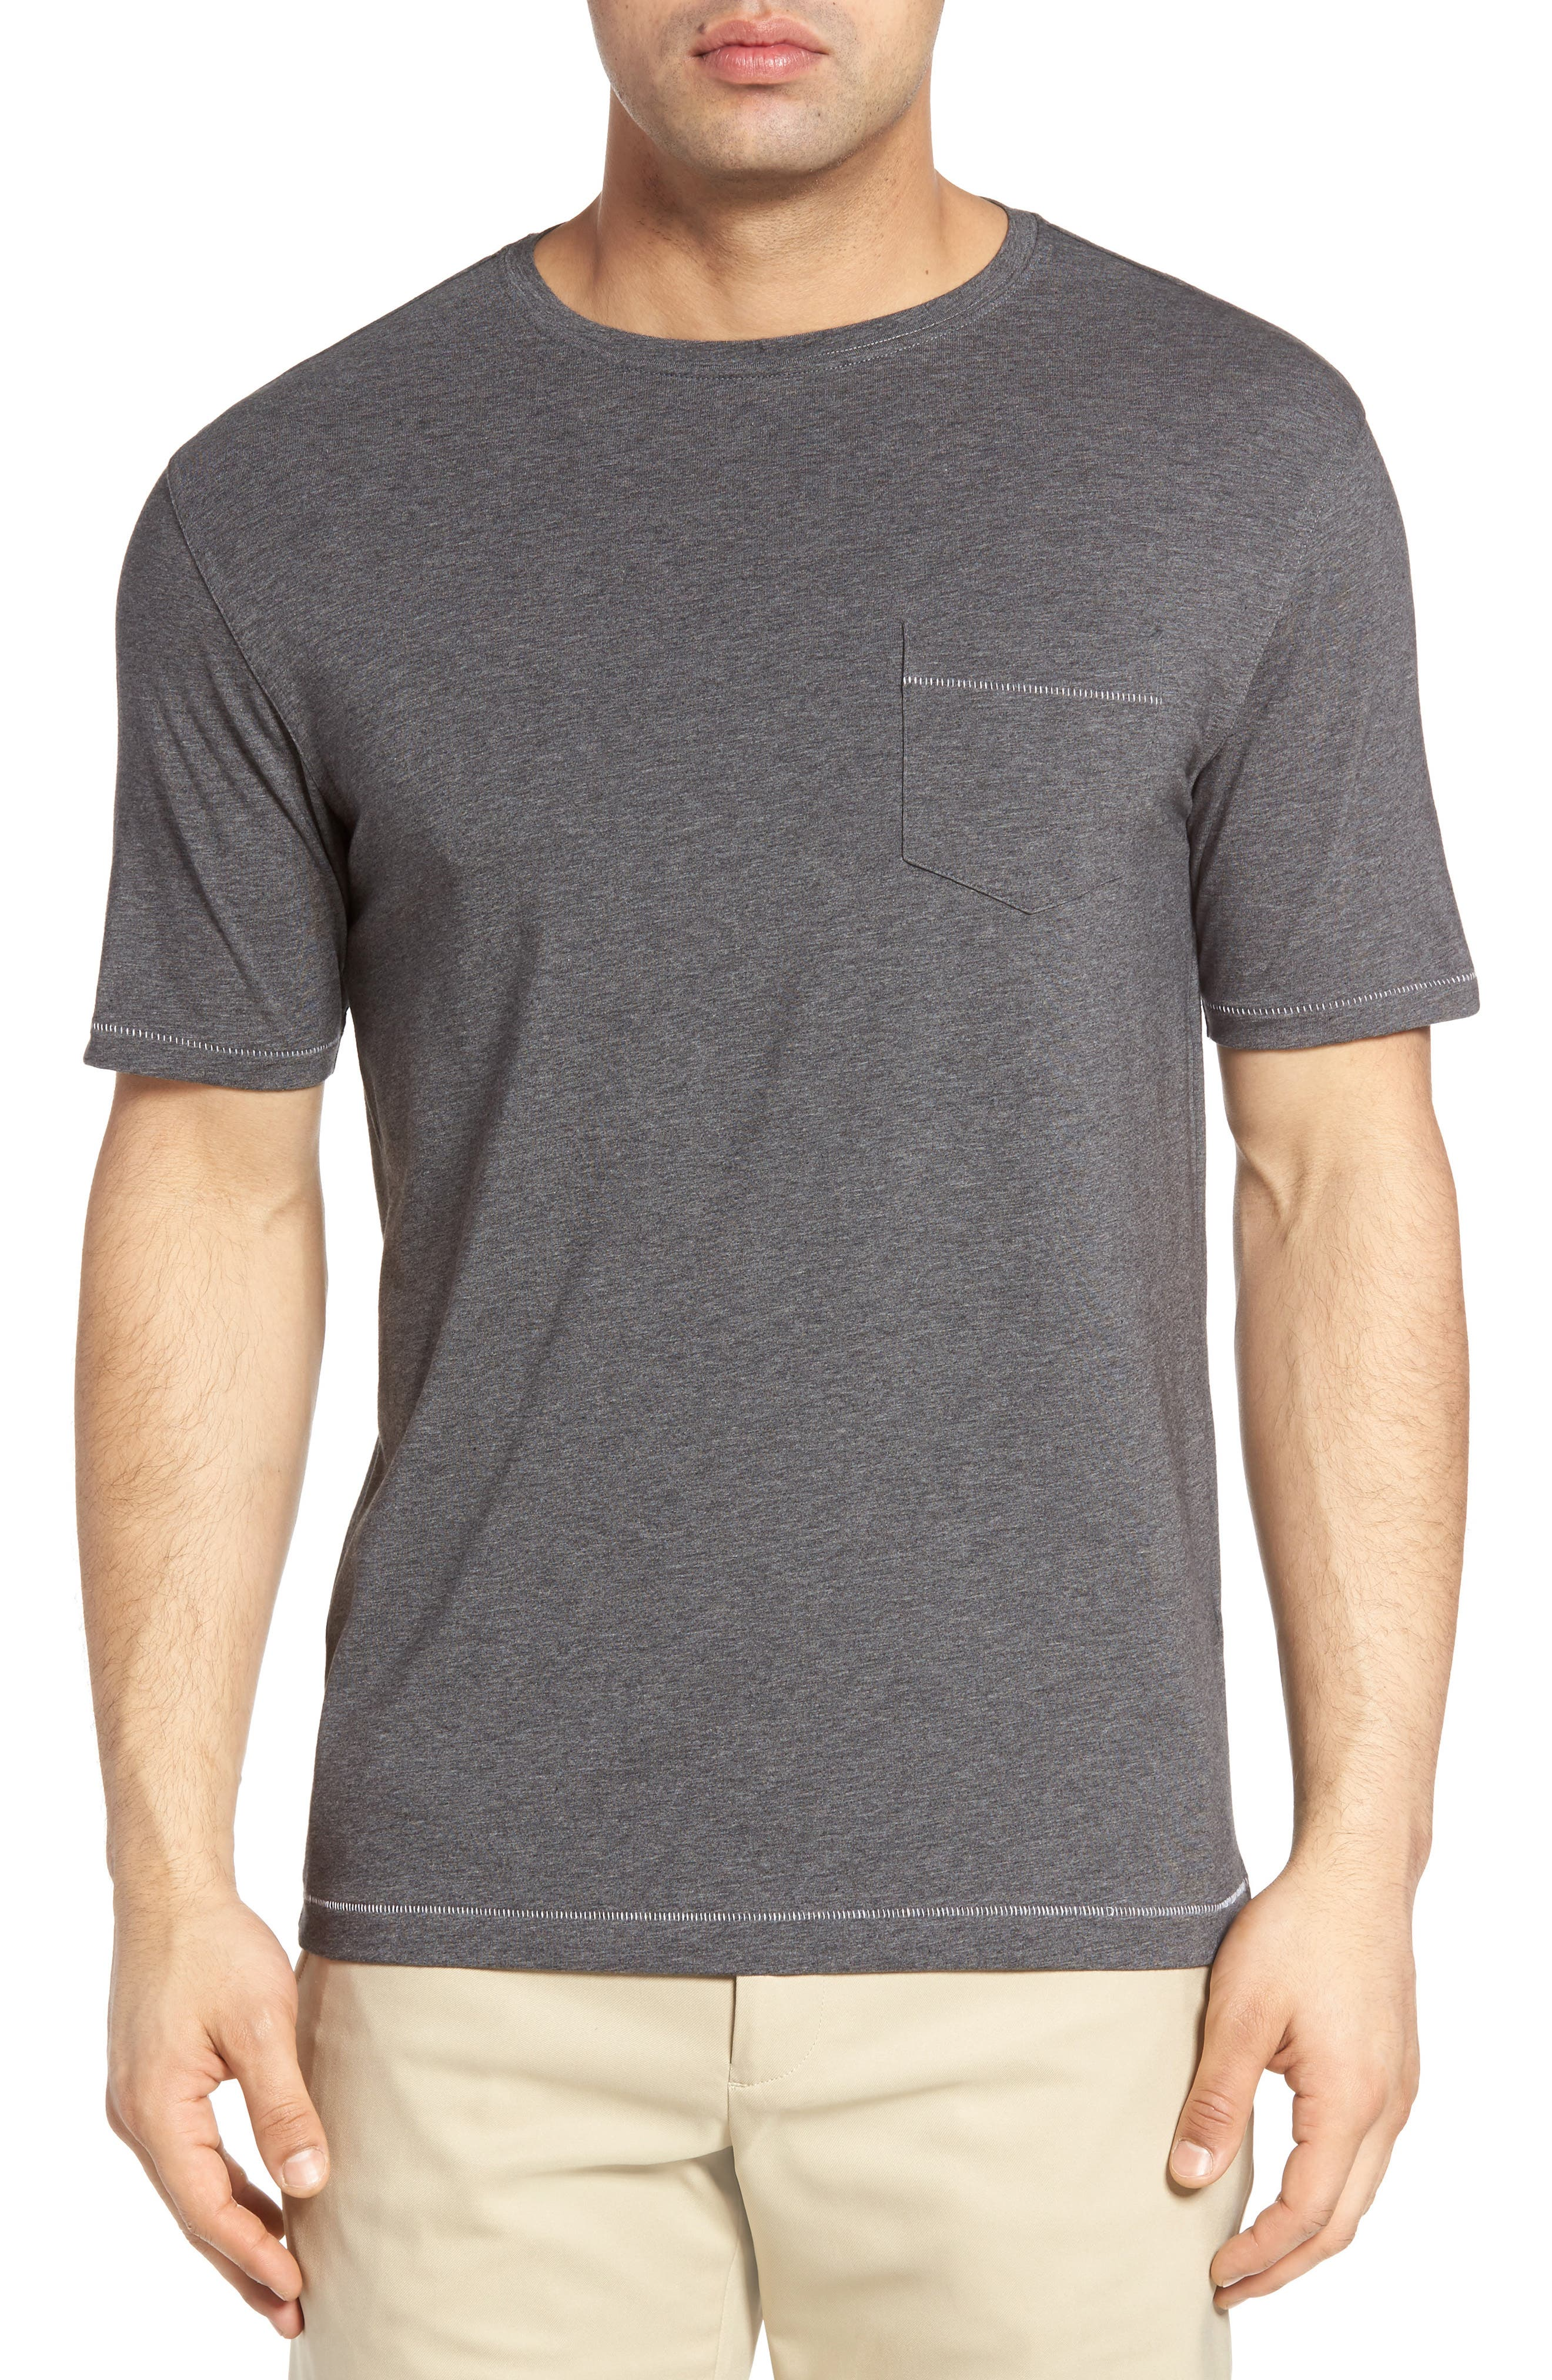 R18 Pocket T-Shirt,                         Main,                         color, Charcoal Heather